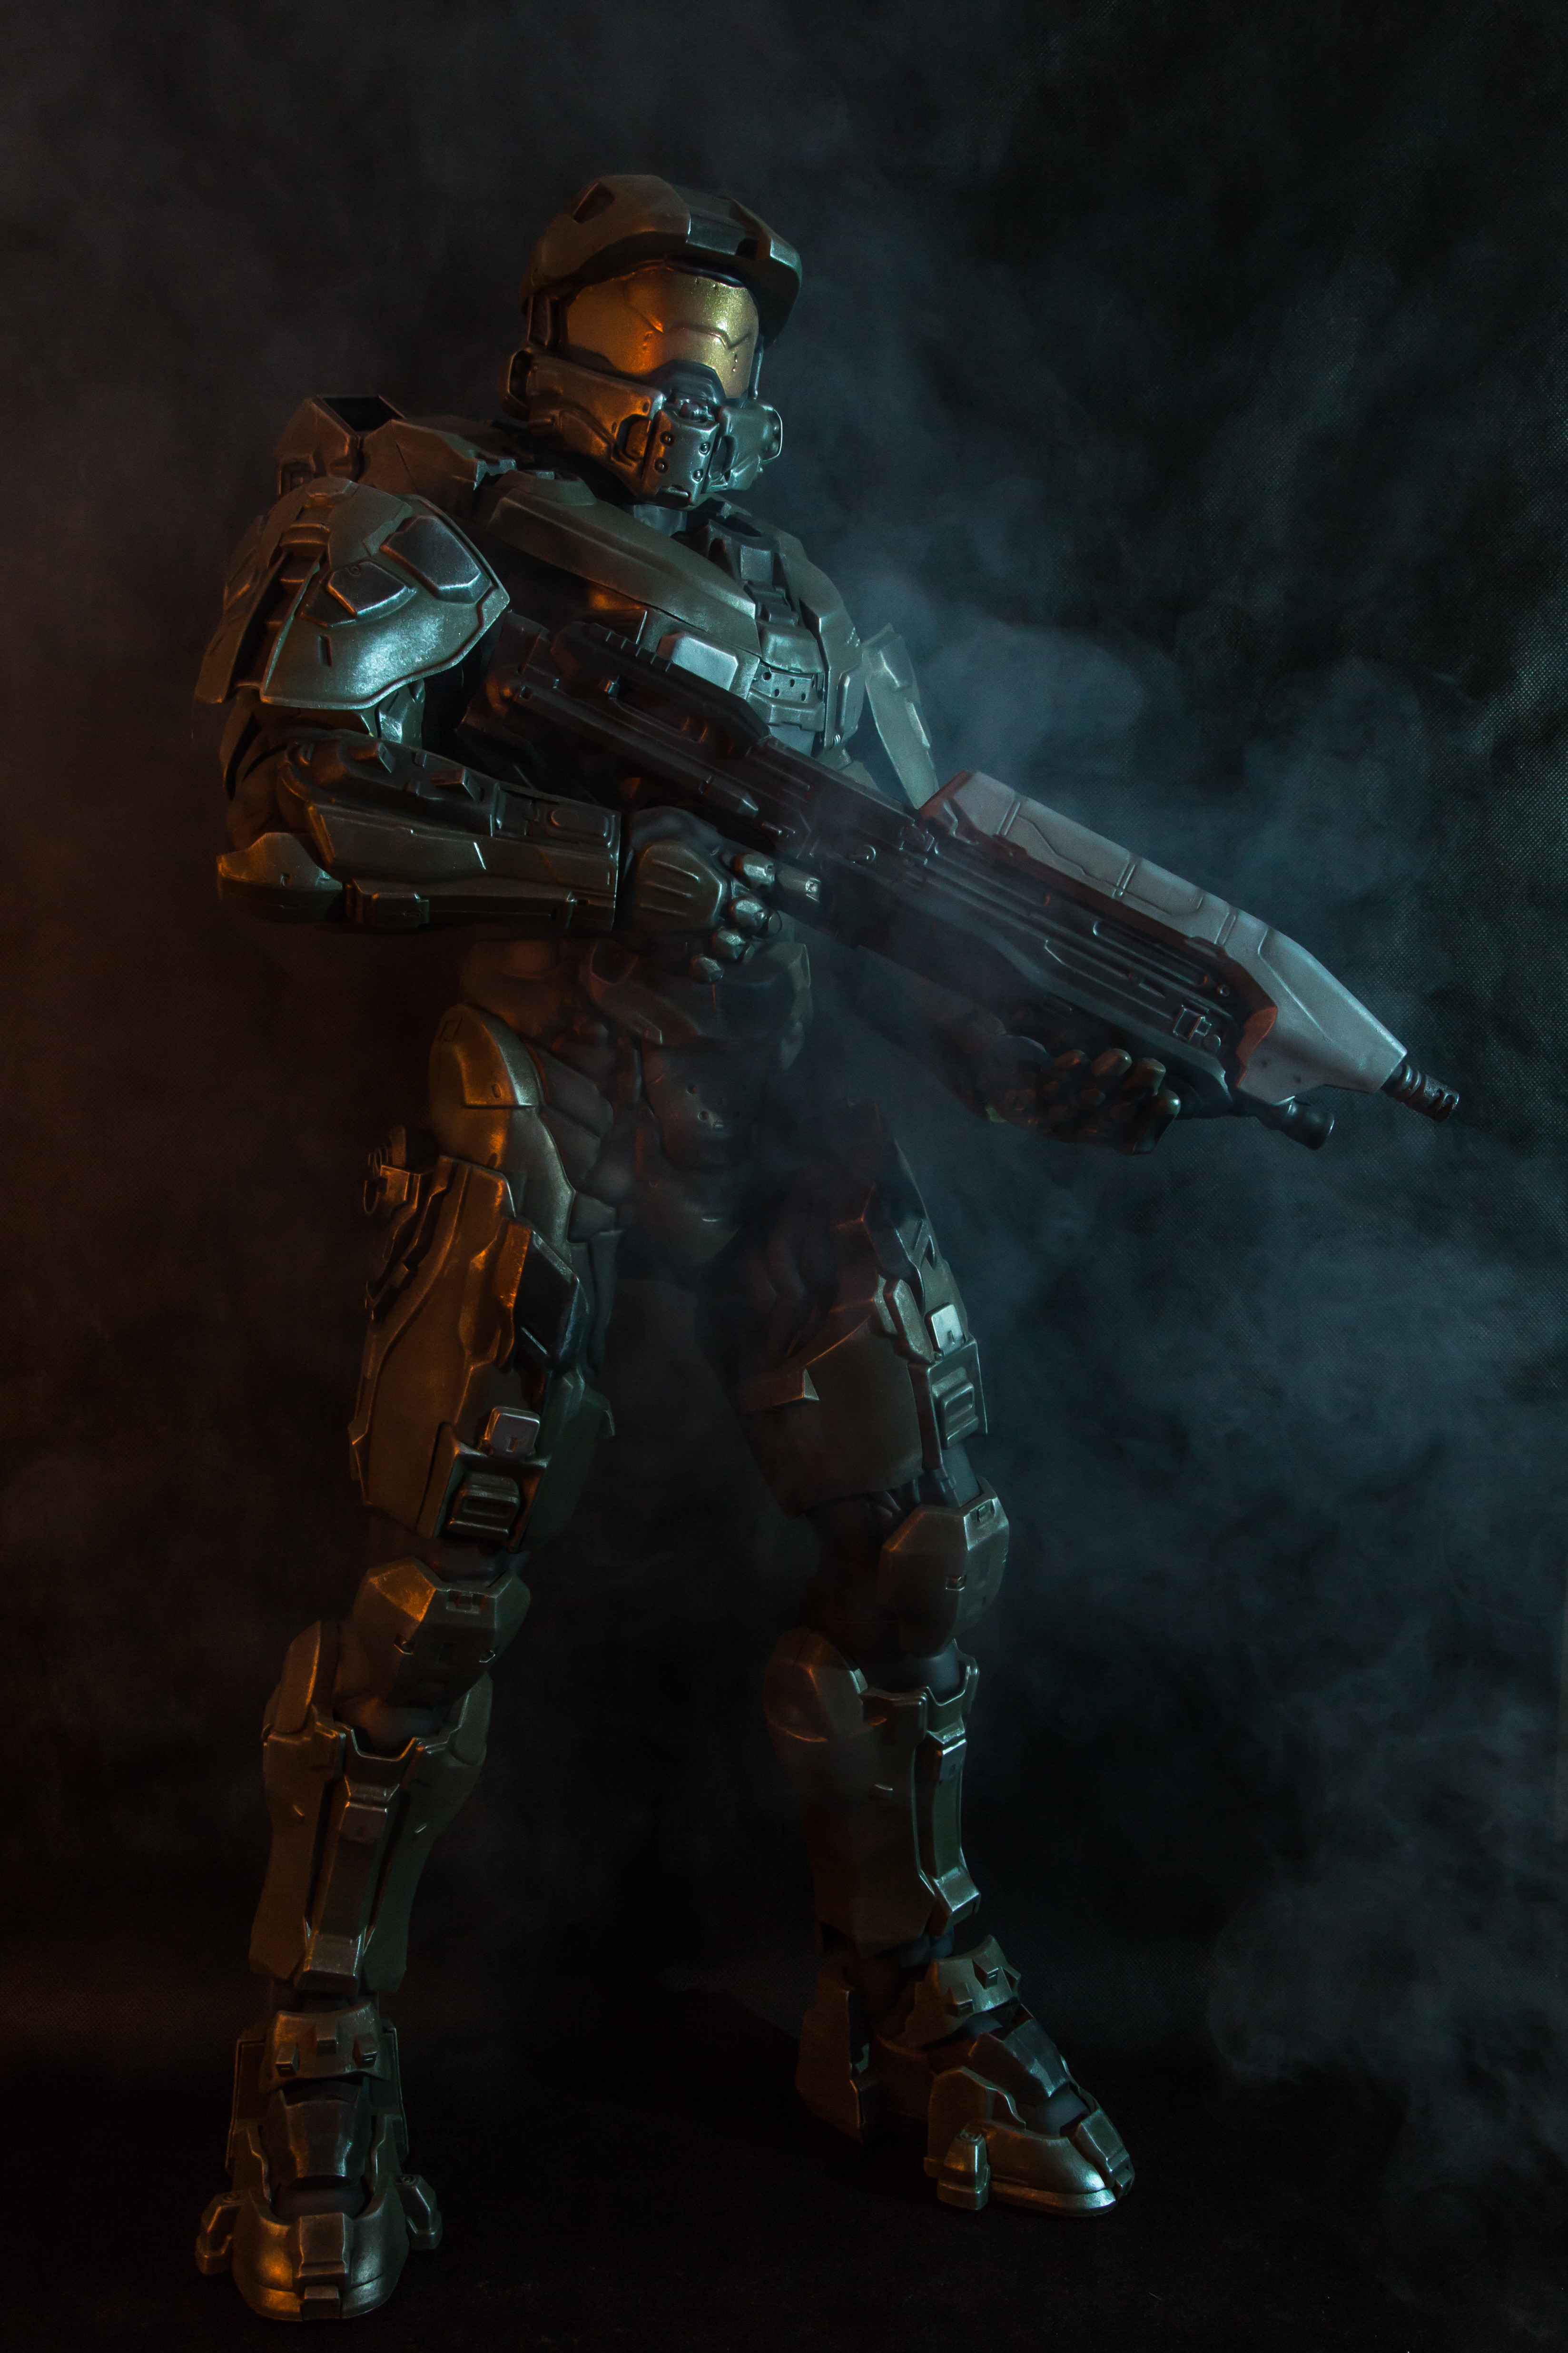 Master chief images master chief hd wallpaper and background photos master chief images master chief hd wallpaper and background photos voltagebd Image collections